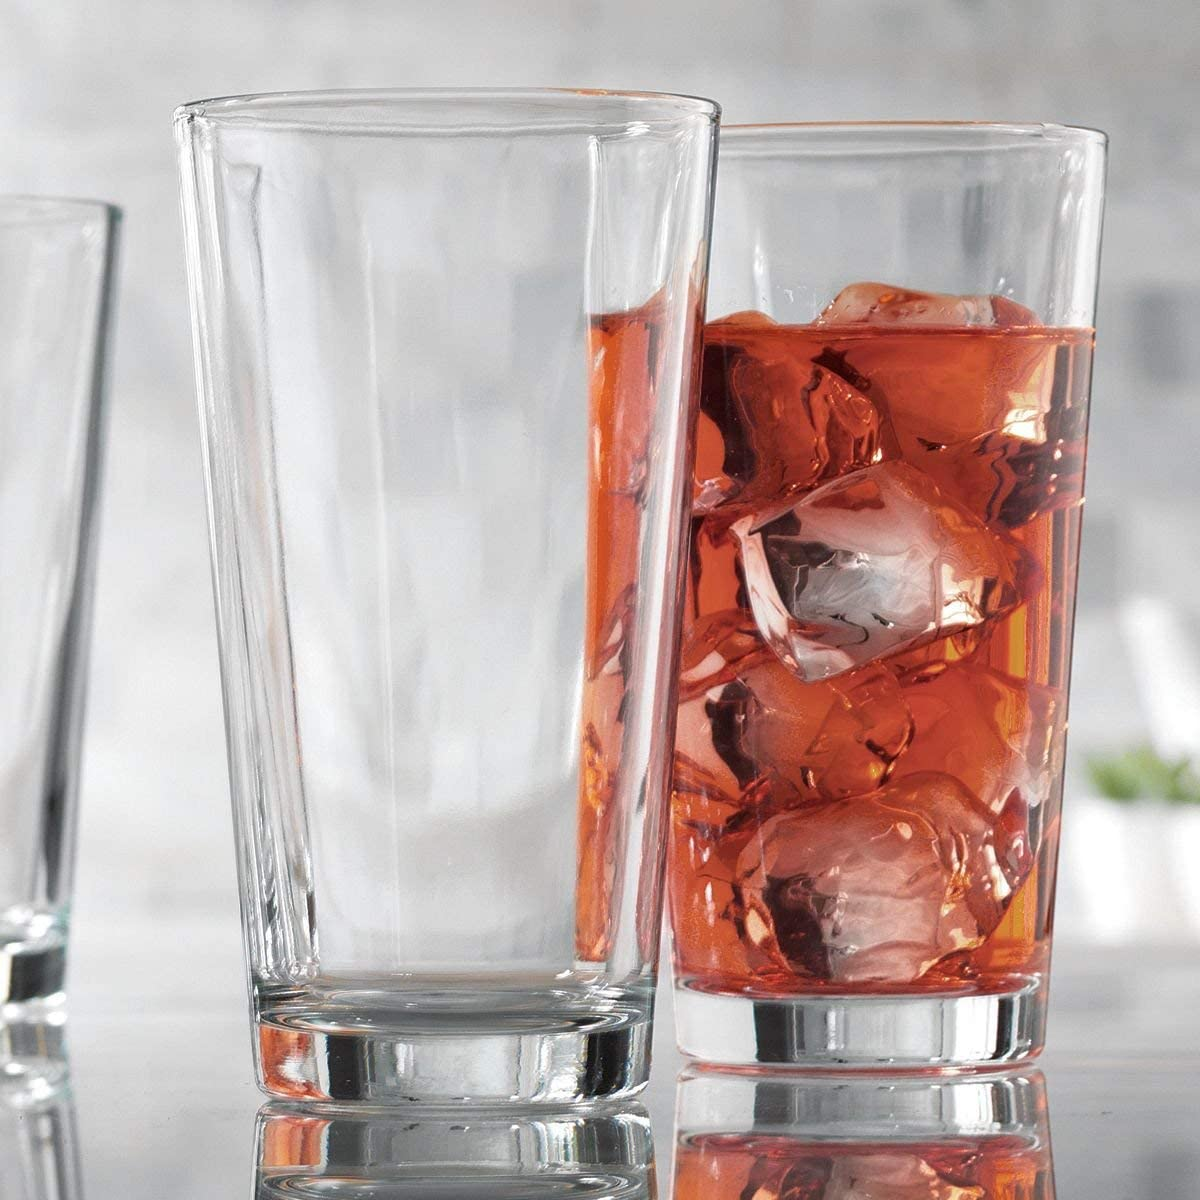 Drinking Glasses Set of 10 Highball Water Glass Cups 17 Oz. Modern Straight Tumbler Beverage Glassware – By Home Essentials & Beyond – Ideal for Water, Juice, Cocktails.